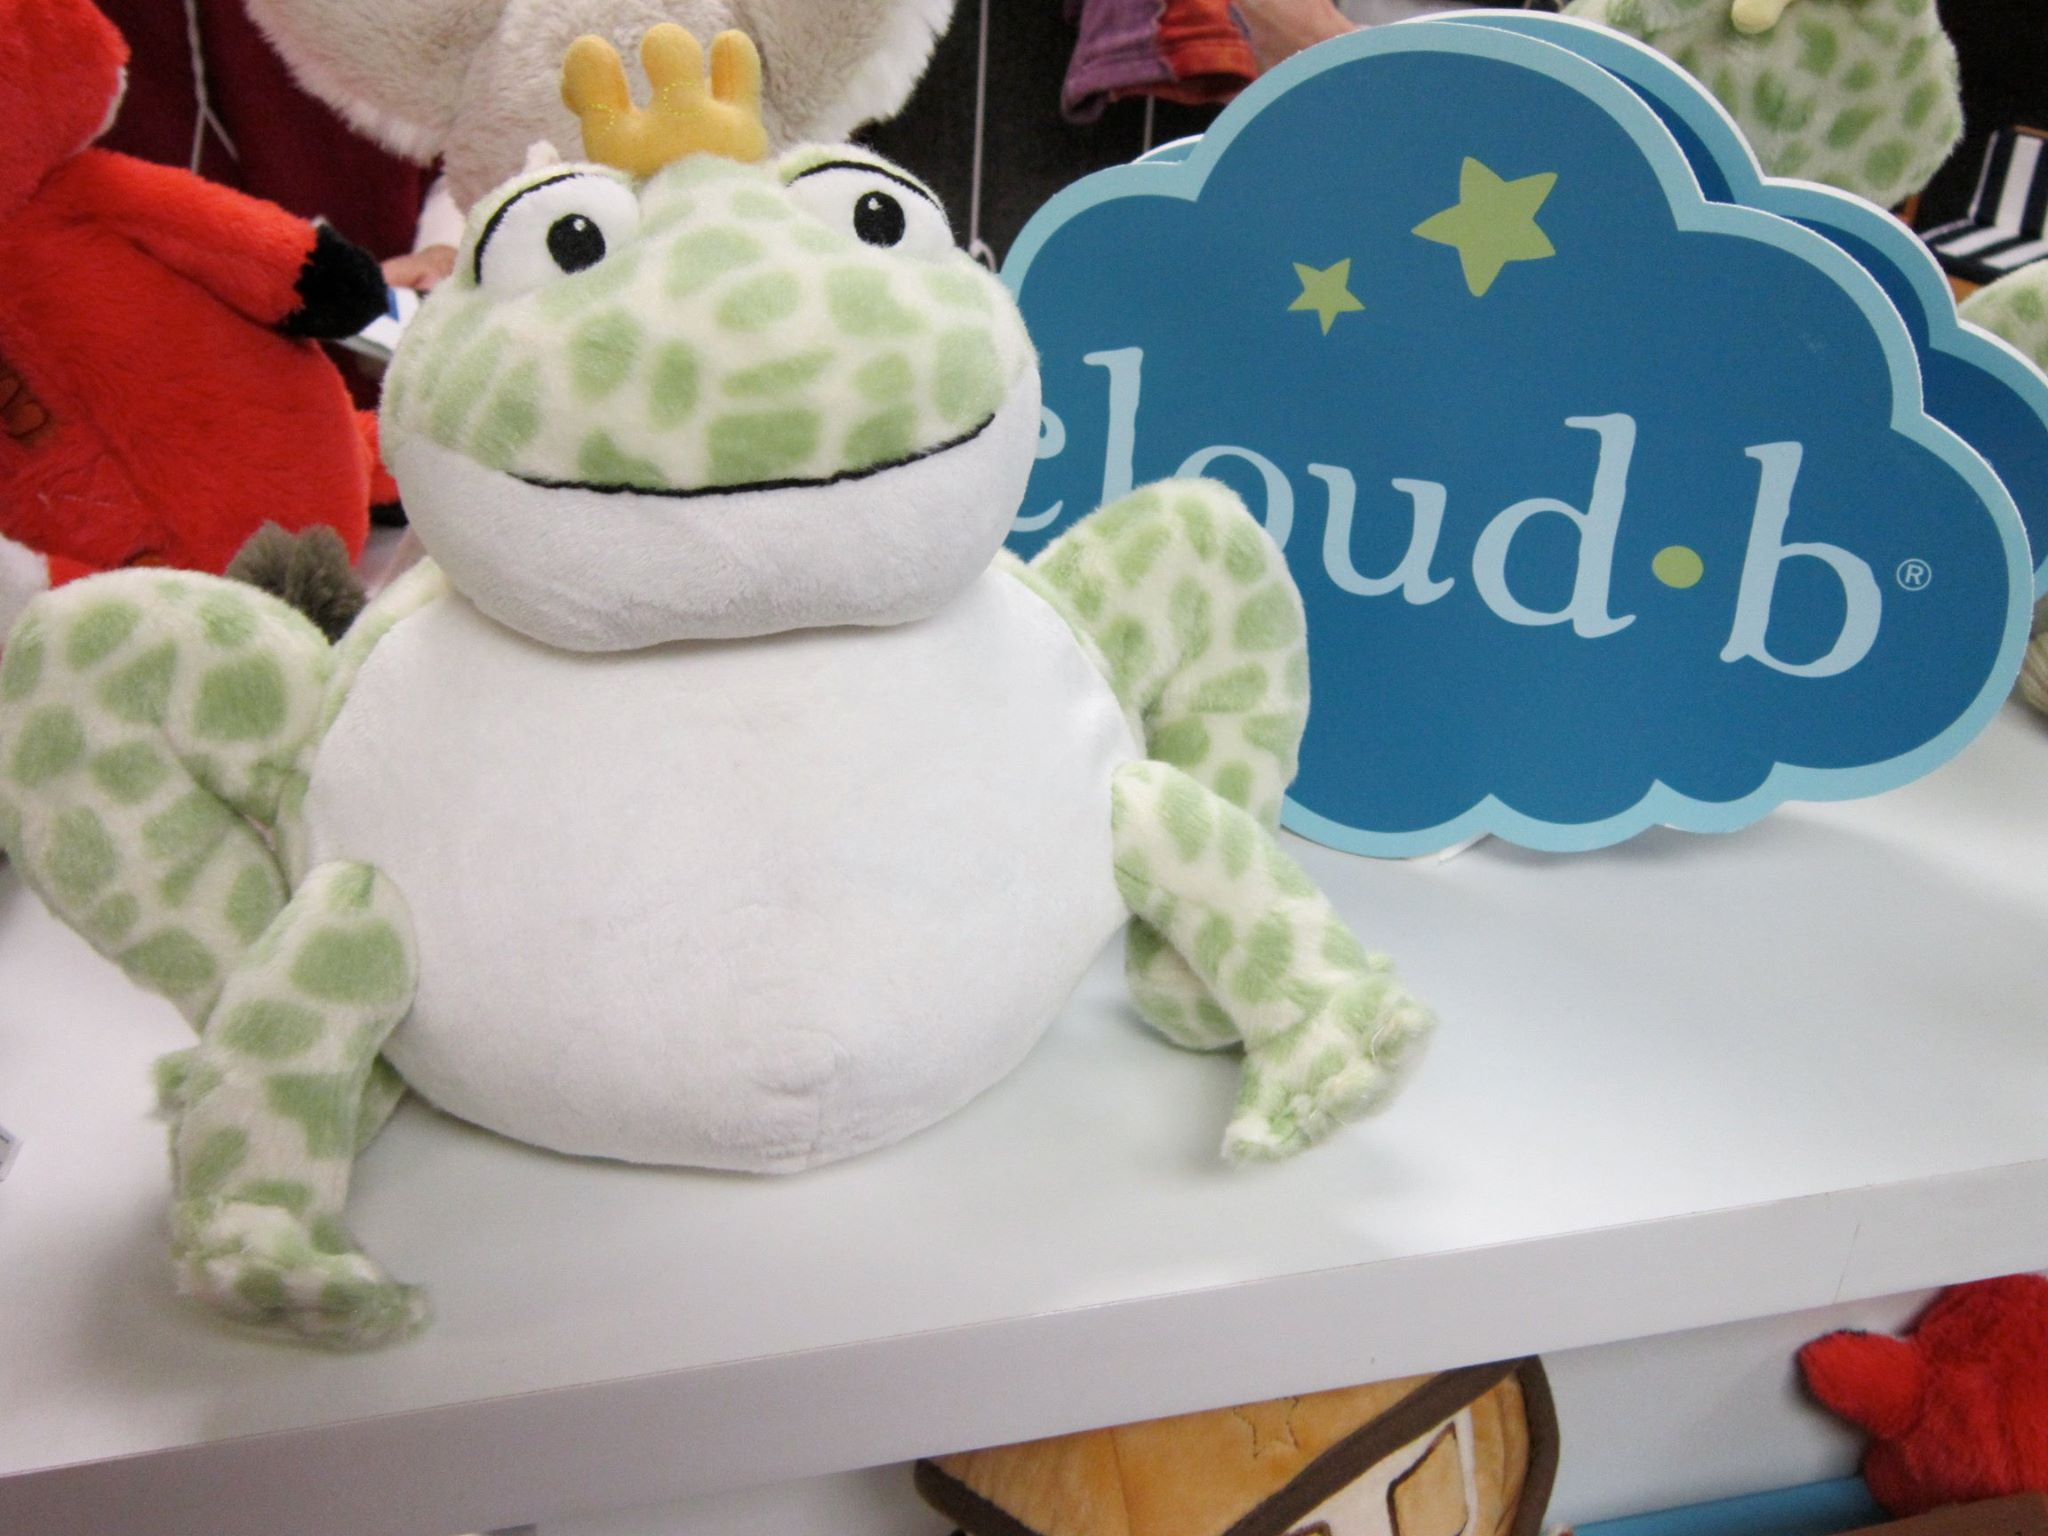 Cloud b frog prince uses soft light and sound to soothe babies.